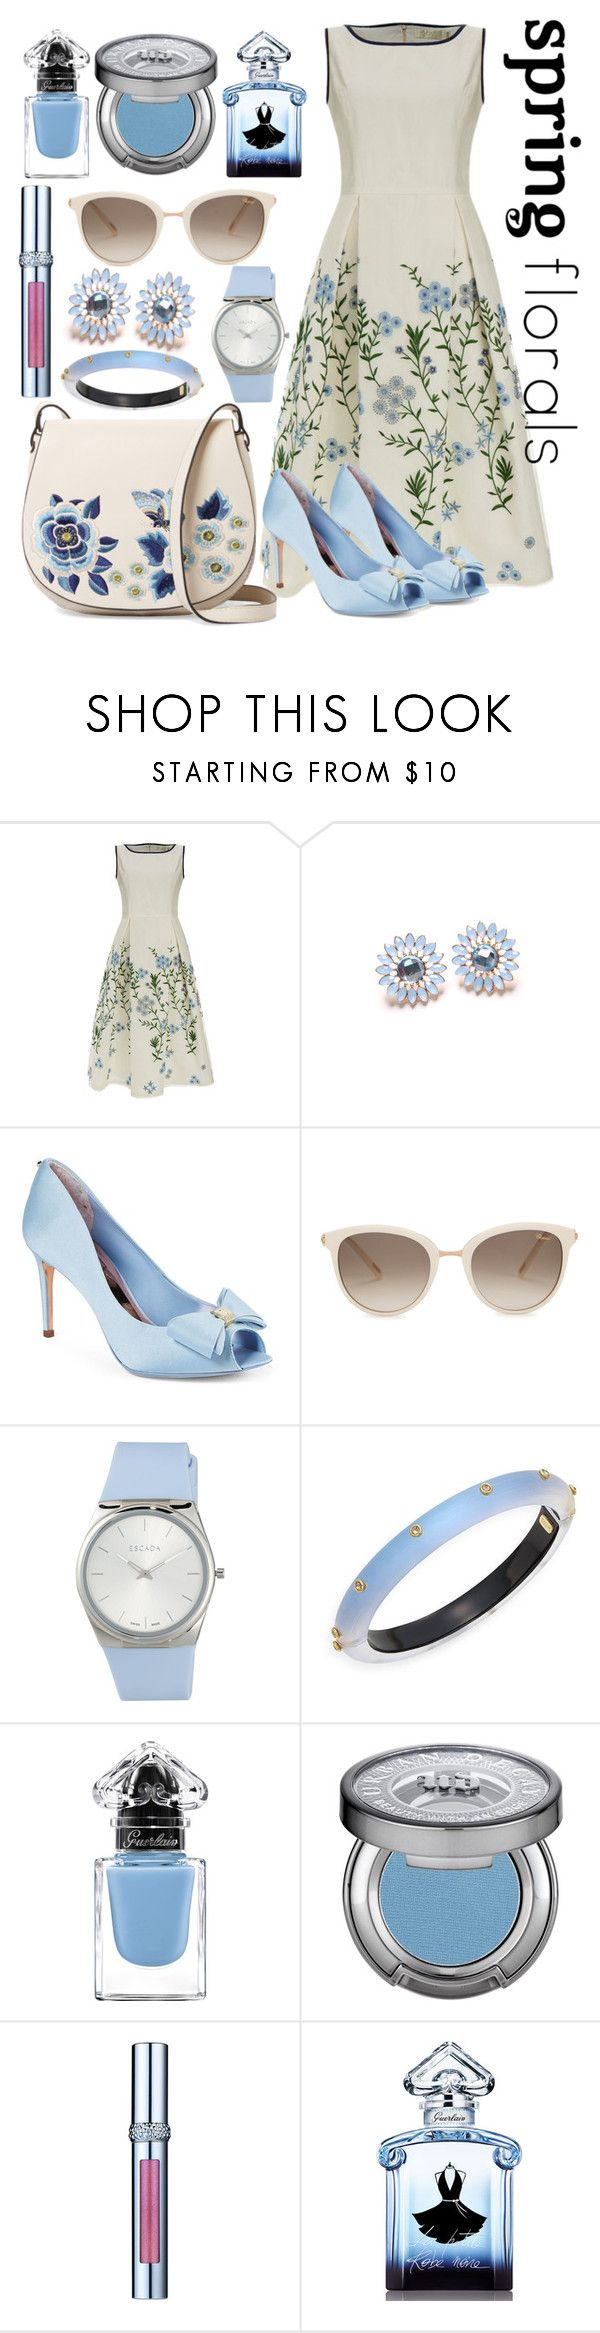 """Spring Floral Dress"" by lullulu ❤ liked on Polyvore featuring Goat, Ted Baker, Chopard, ESCADA, Alexis Bittar, Urban Decay, La Prairie, Guerlain and French Connection"